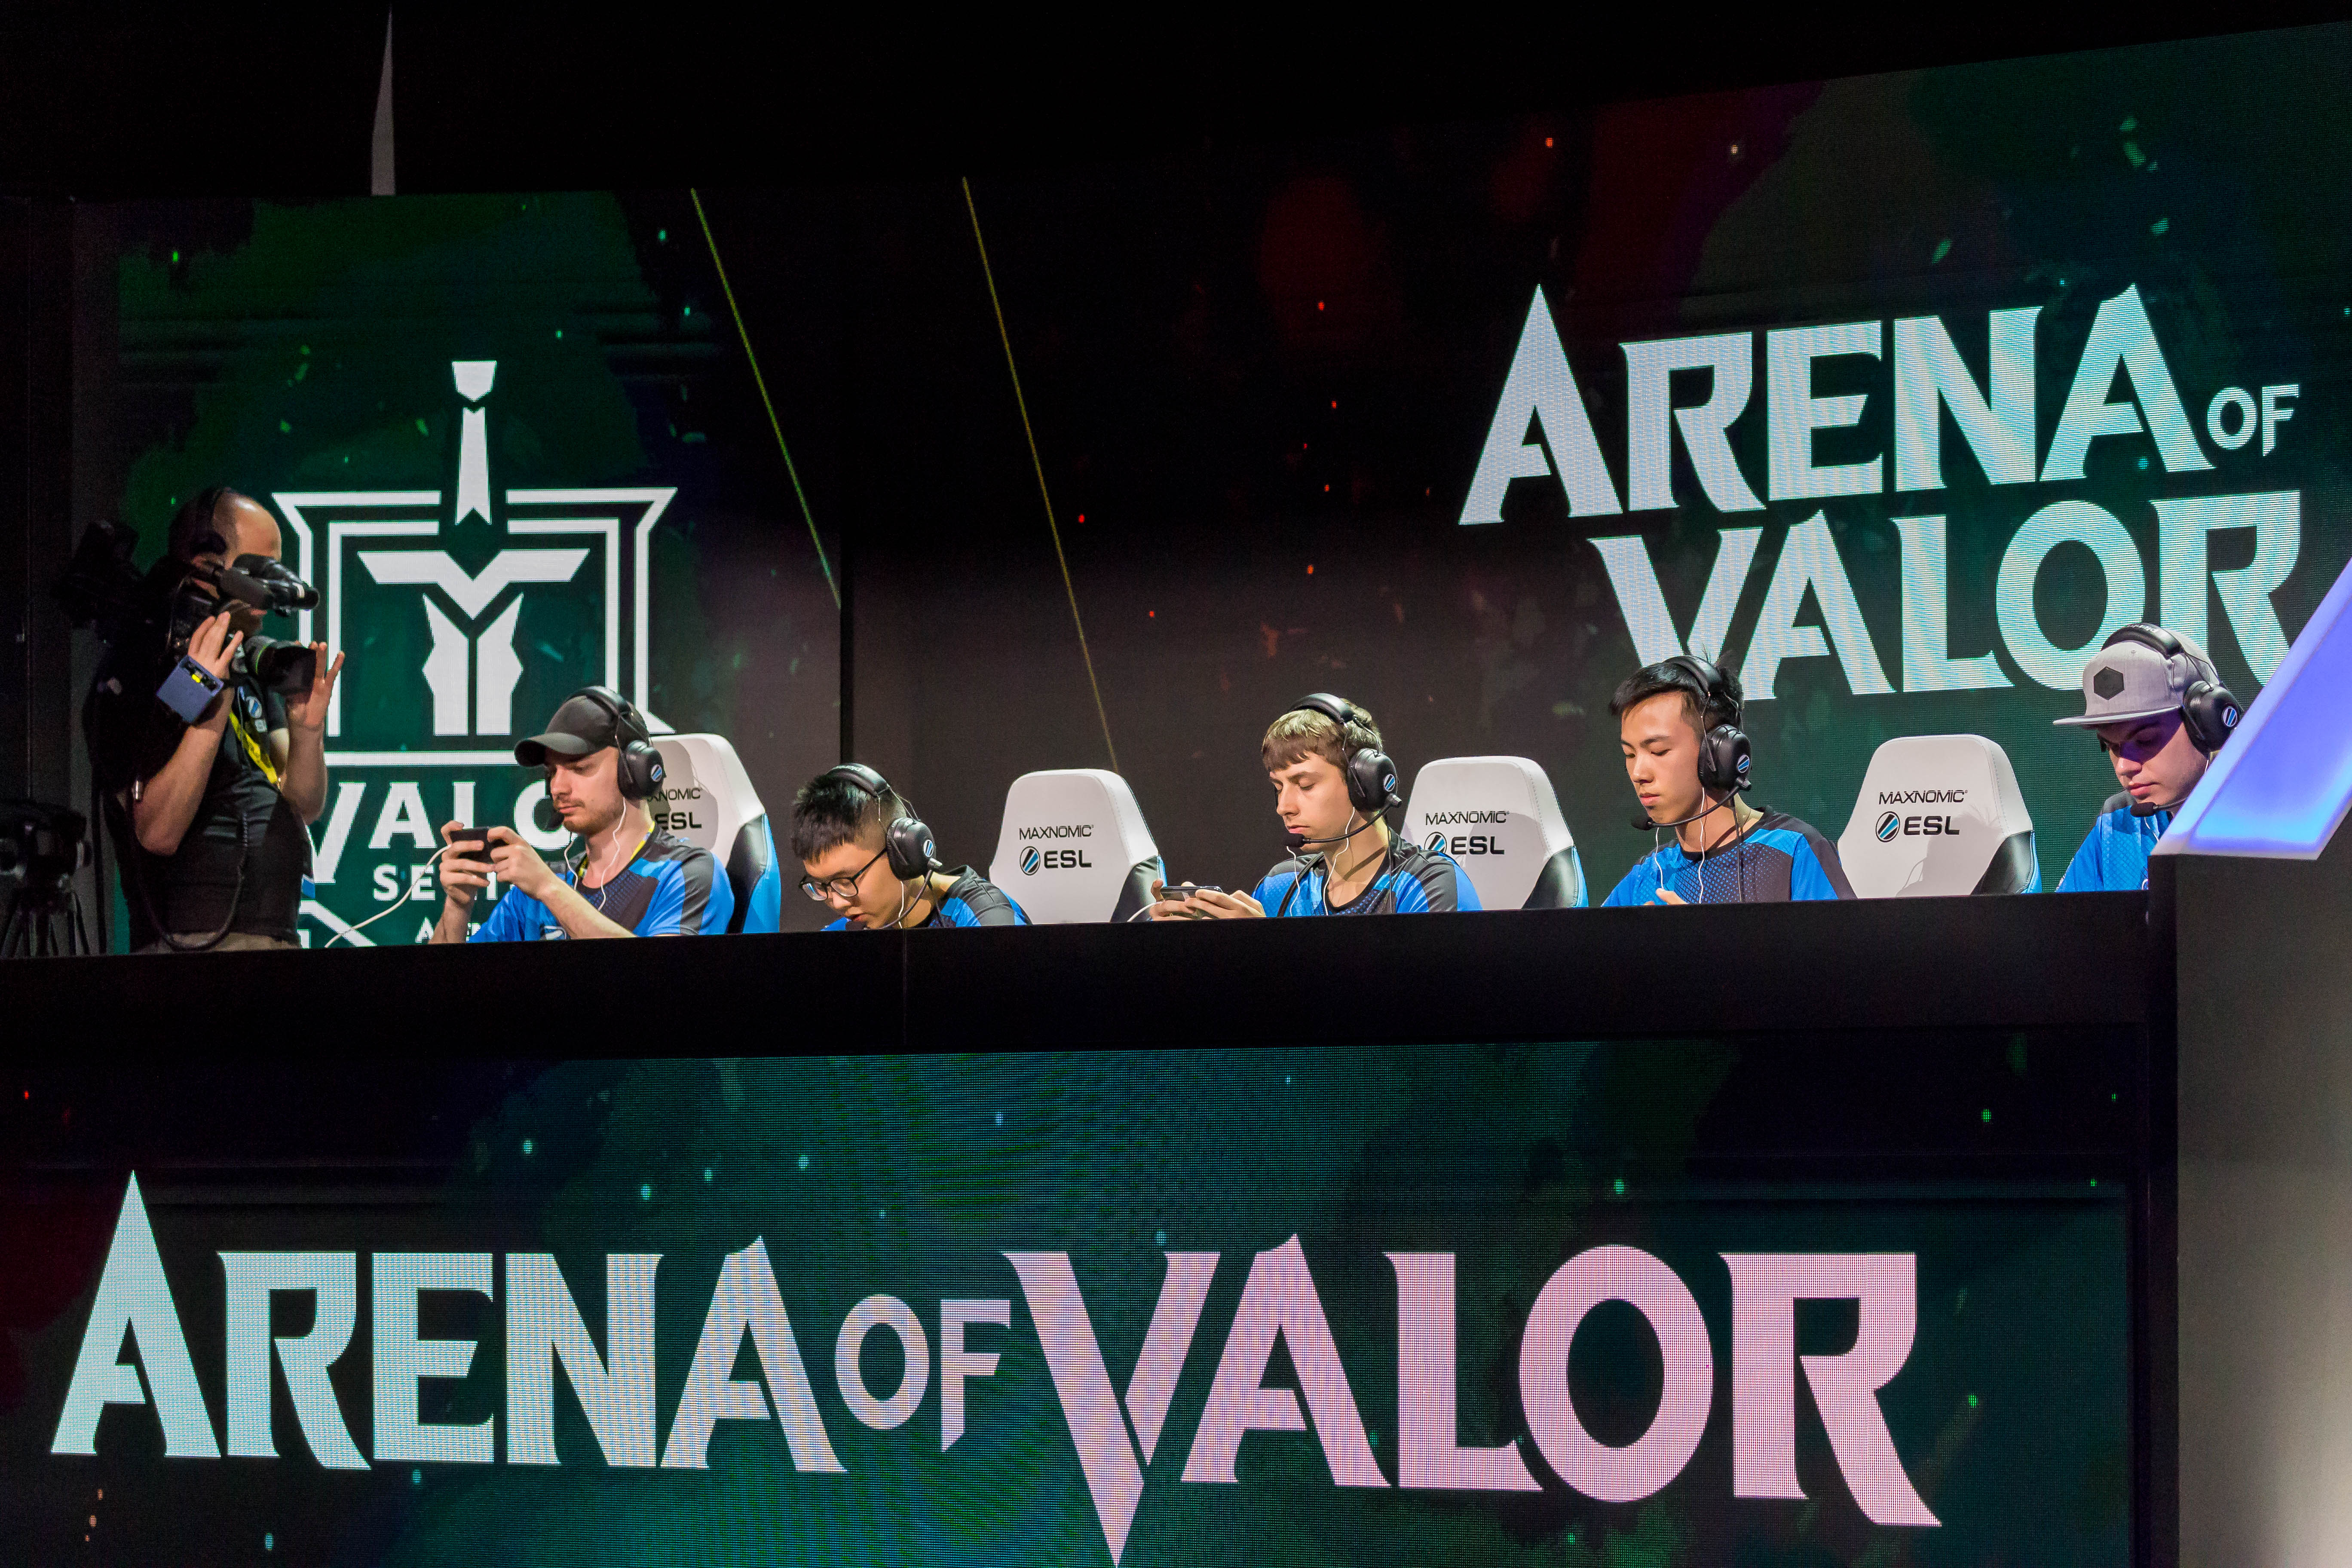 Gamers playing Arena of Valor